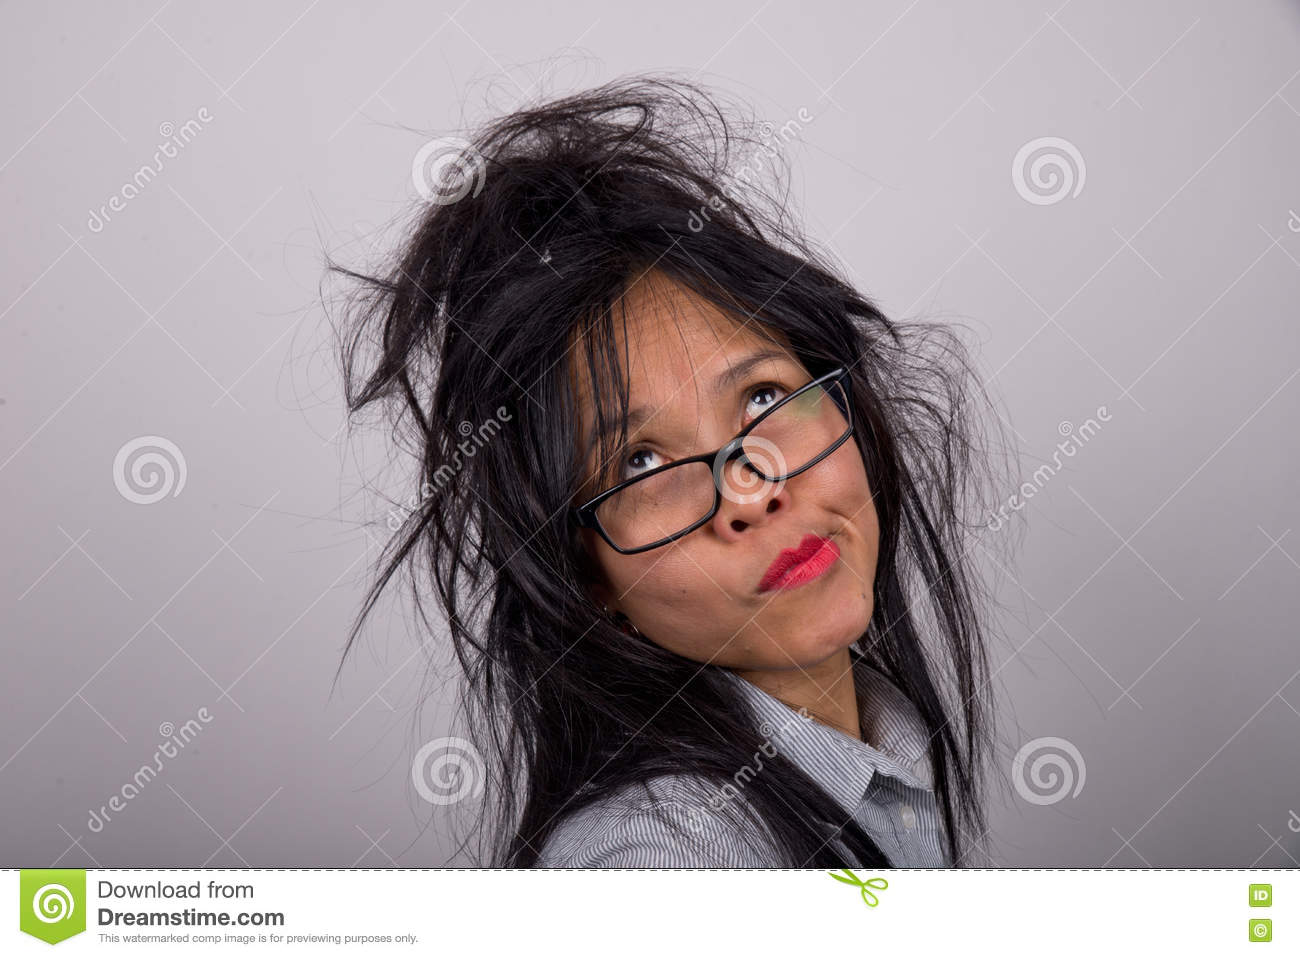 Crazy Woman With Ruffled Hair Stock Image Image 74965591